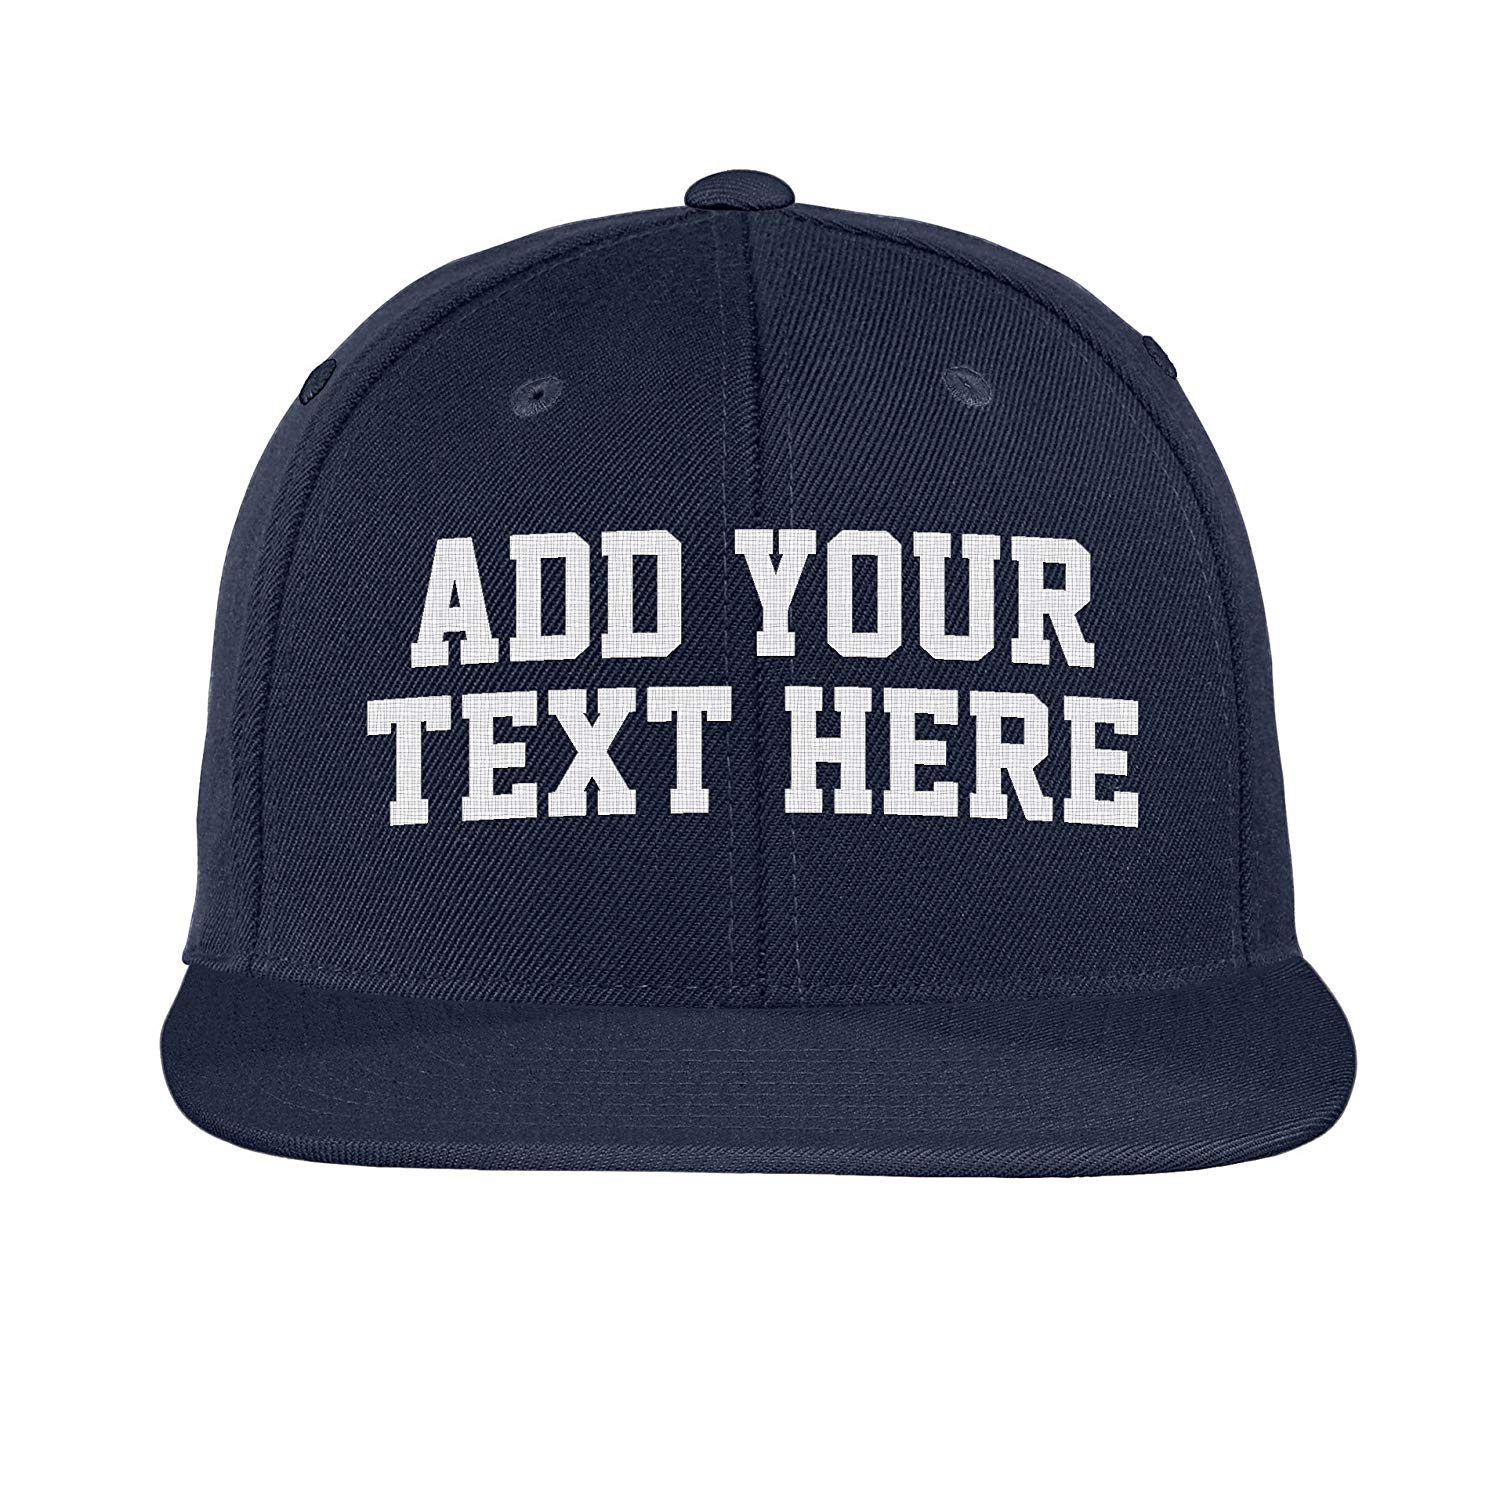 def835049842b Cheap Custom Embroidered Snapback, find Custom Embroidered Snapback ...